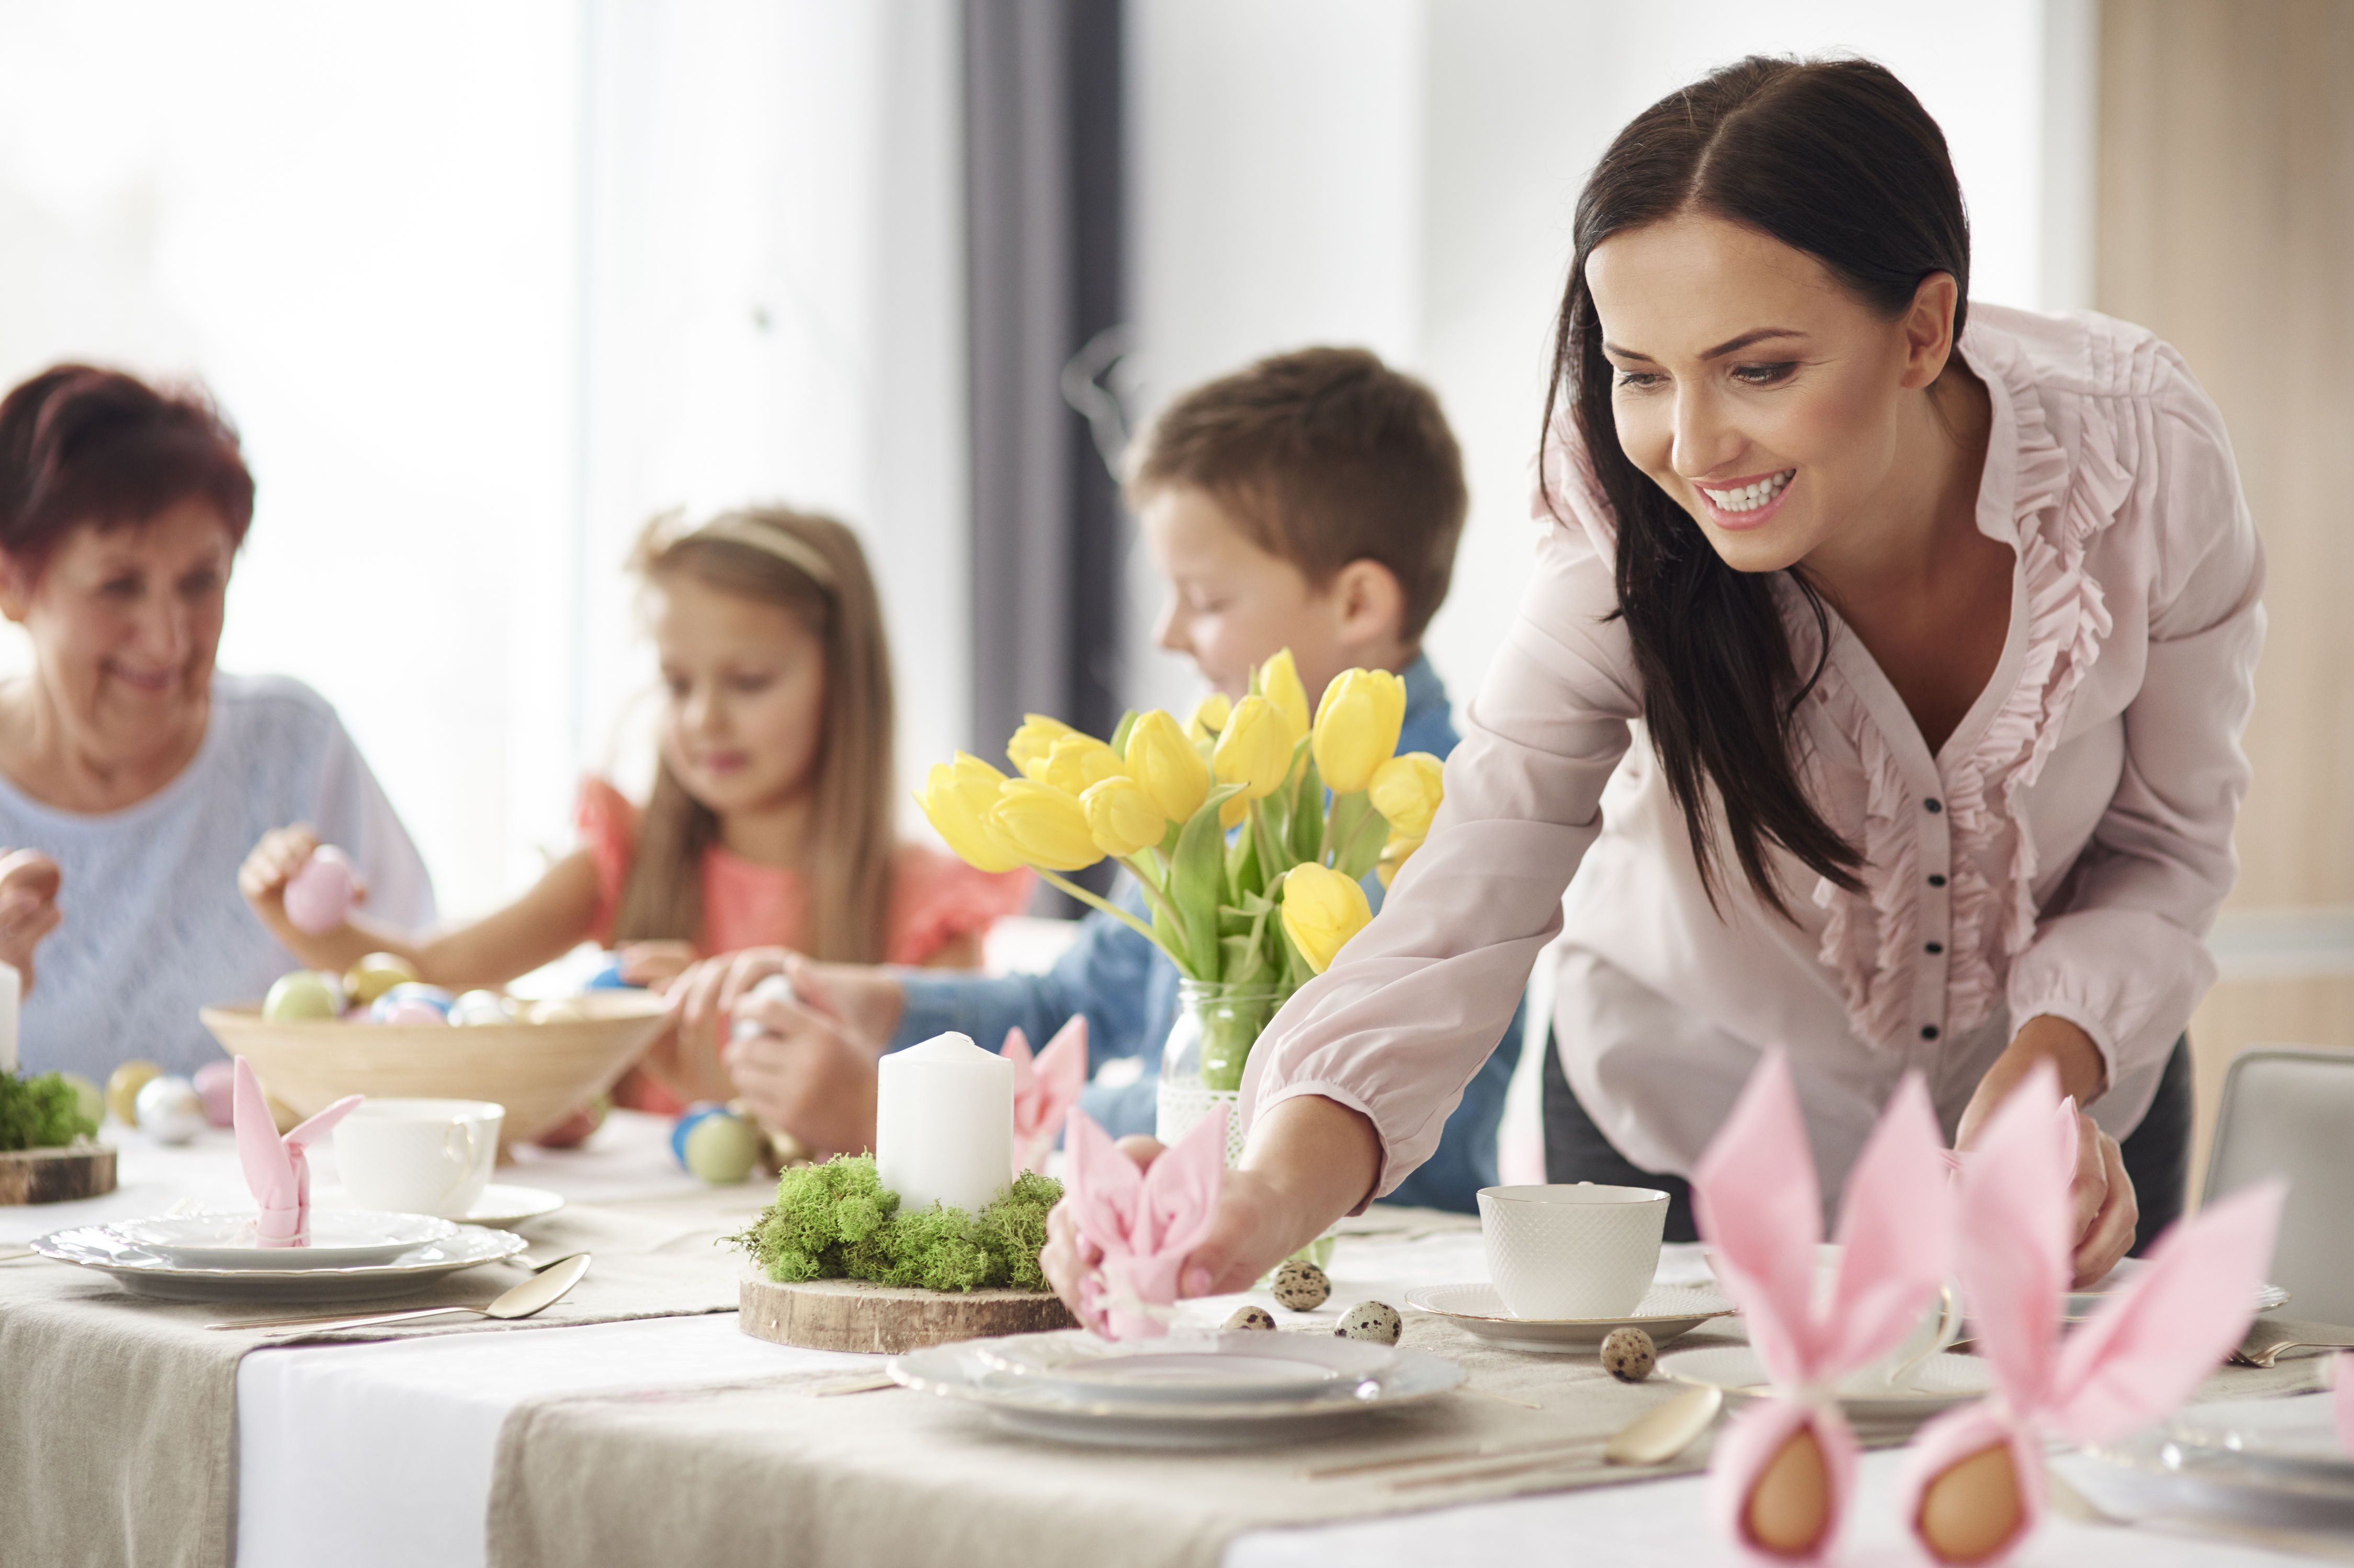 Nearly Two-Thirds of Americans Will Have This Dish on Their Easter Menu